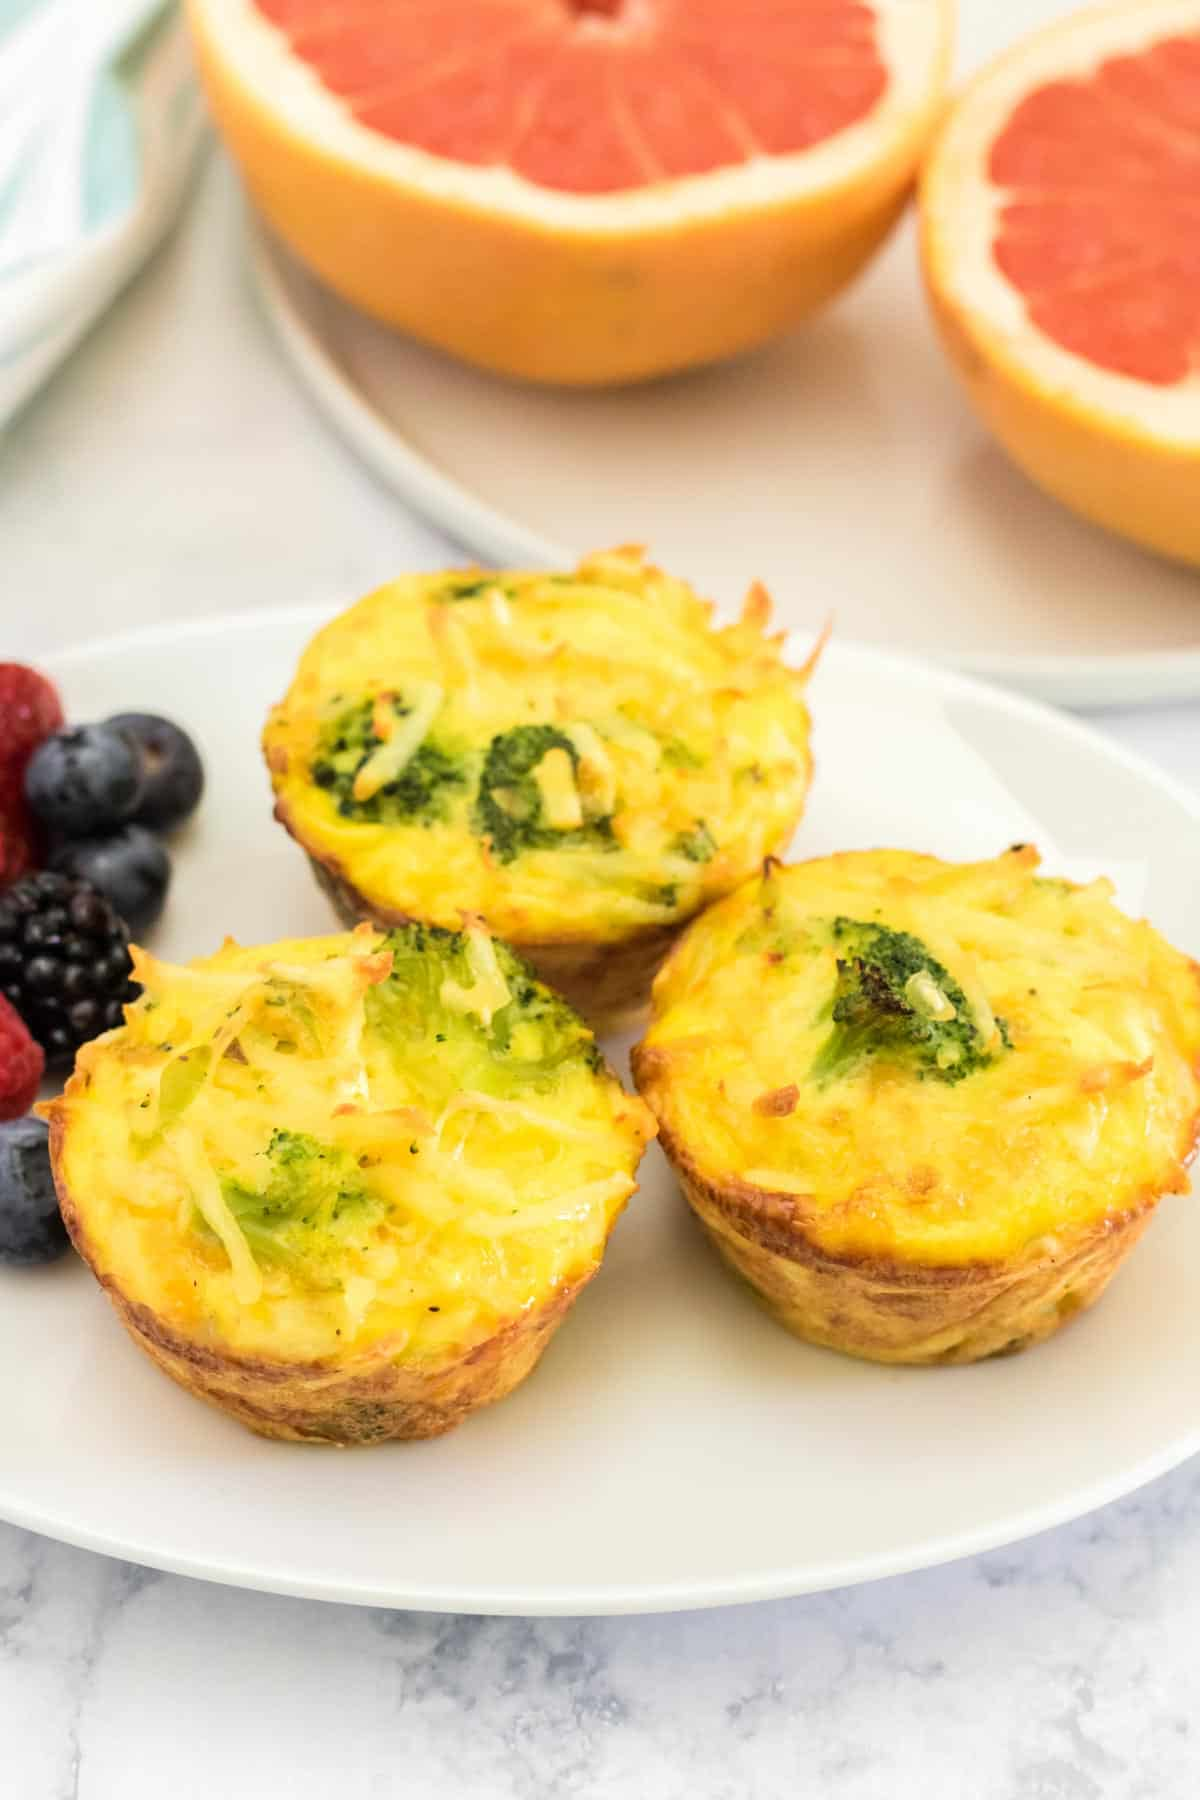 three broccoli cheese egg muffins on a plate next to a small plate with a grapefruit cut in half